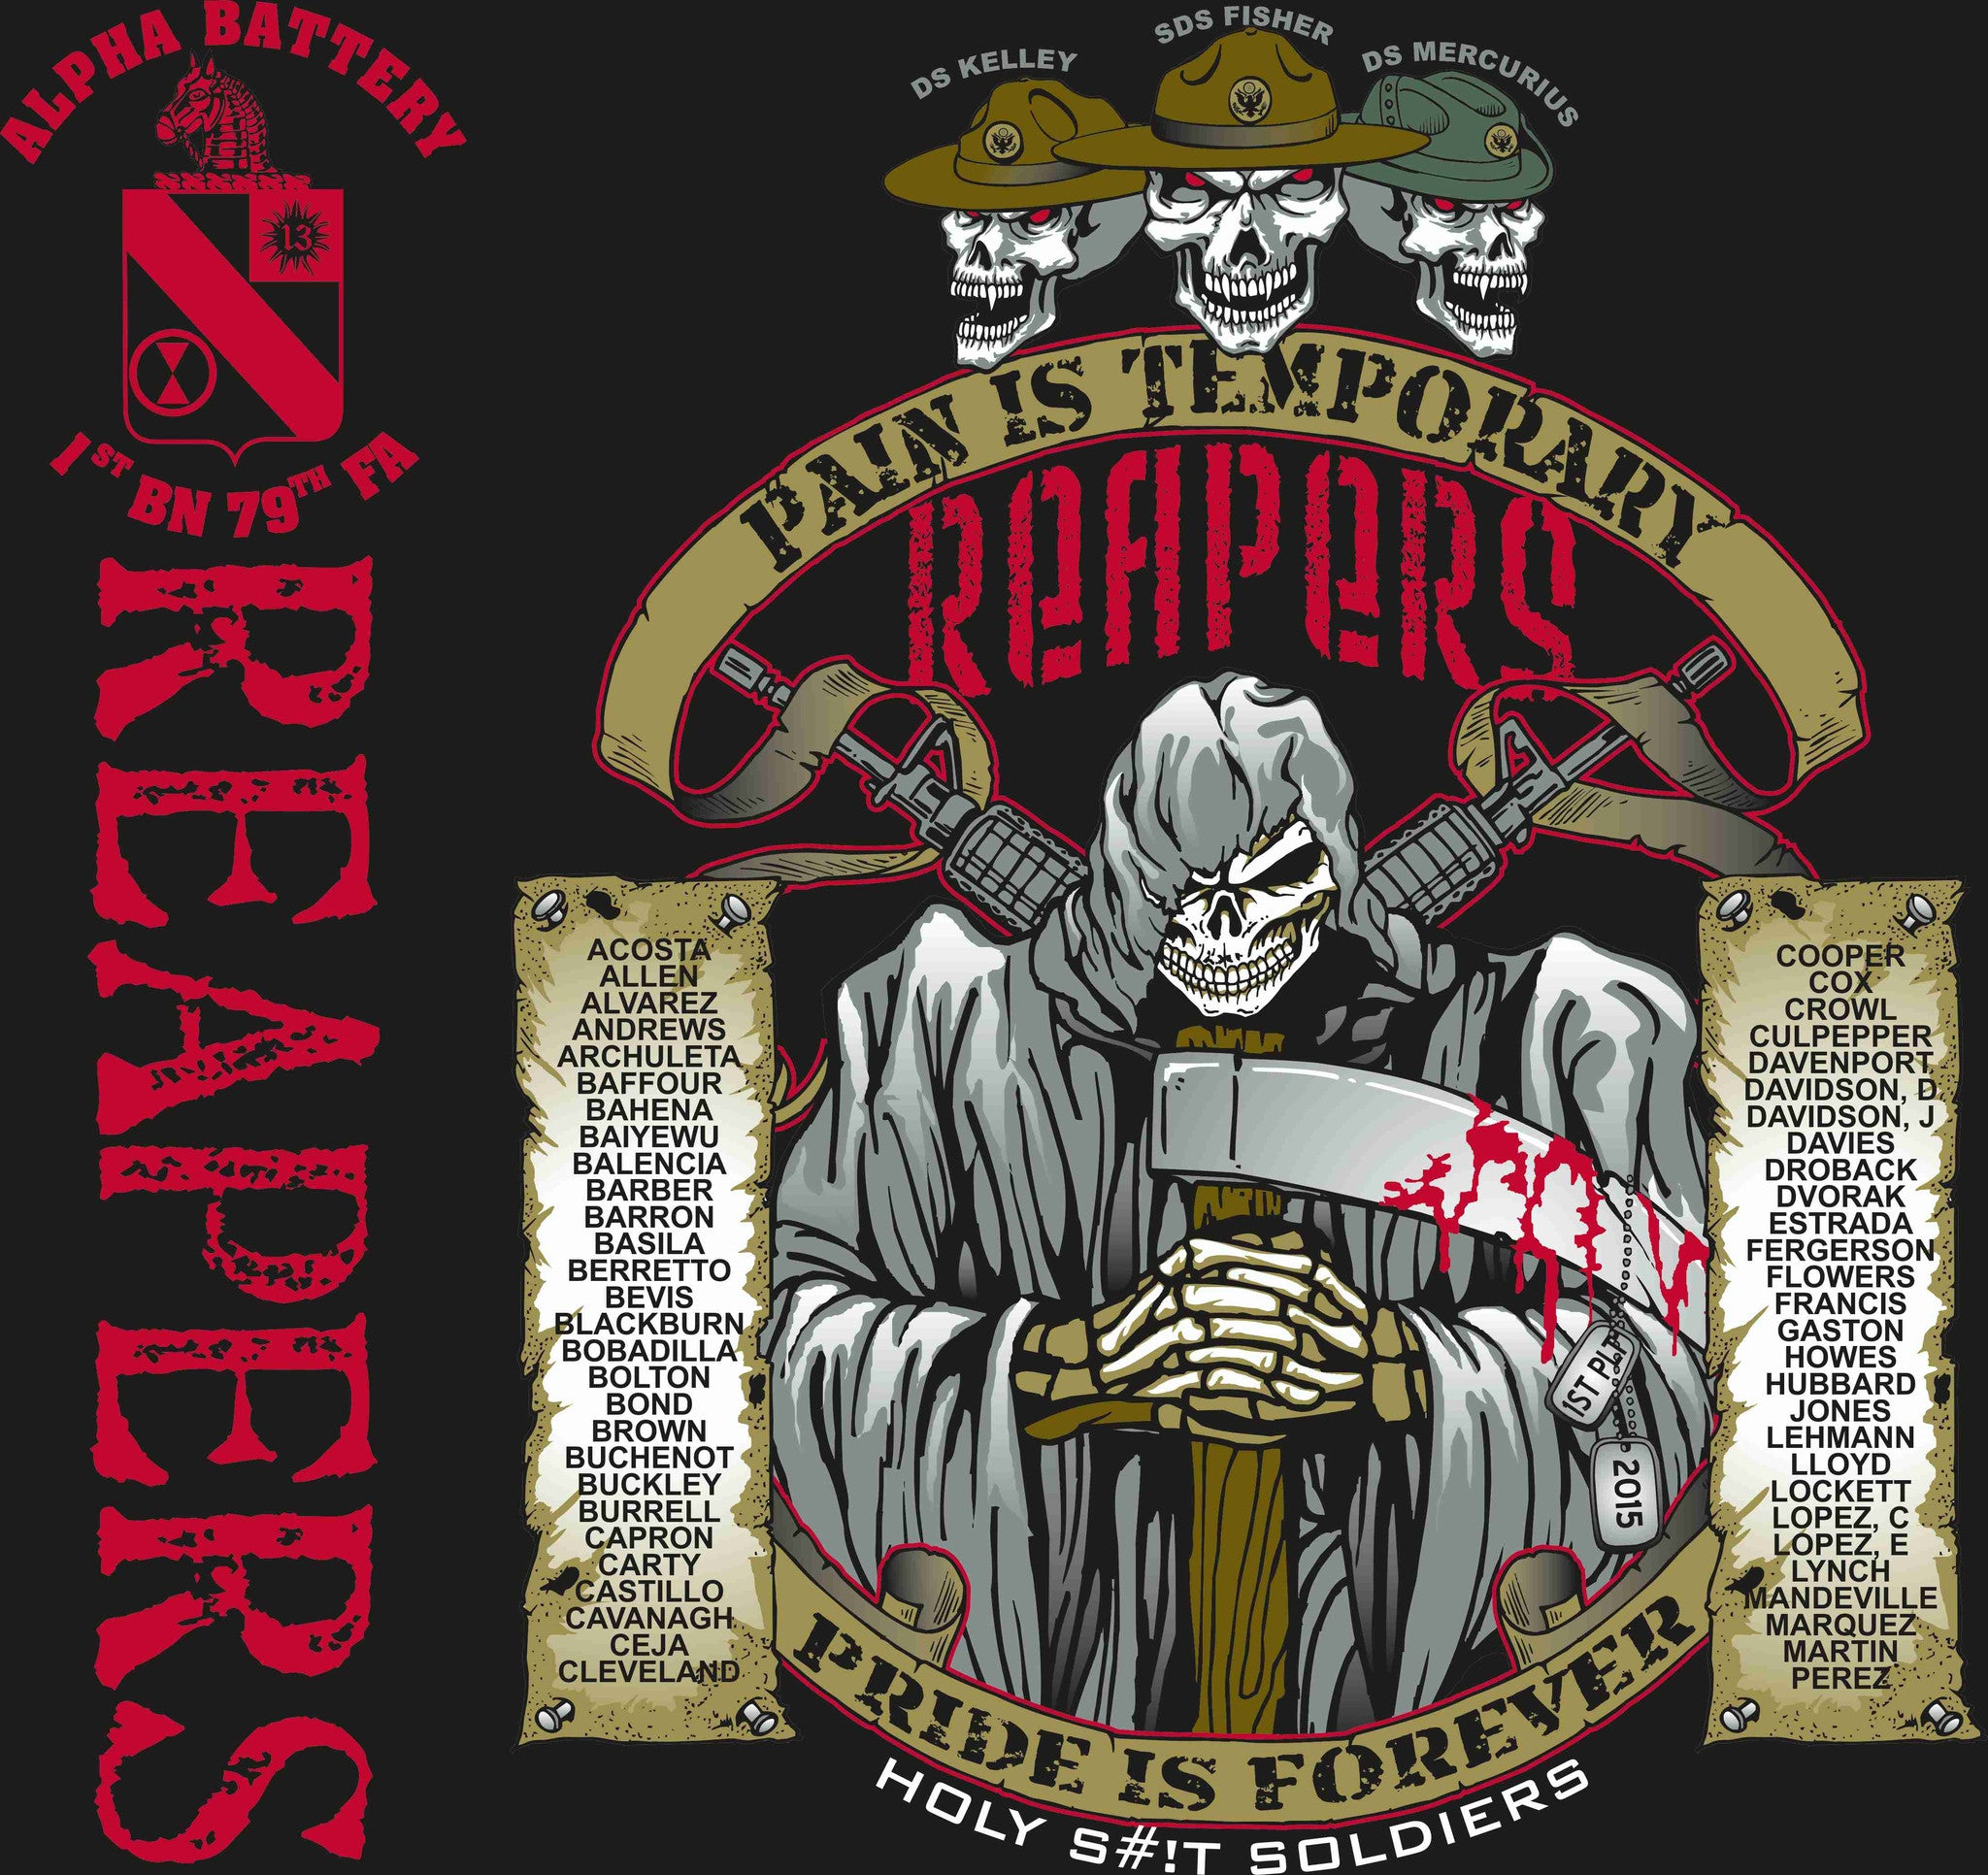 PLATOON SHIRTS (digital) ALPHA 1st 79th REAPERS NOV 2015